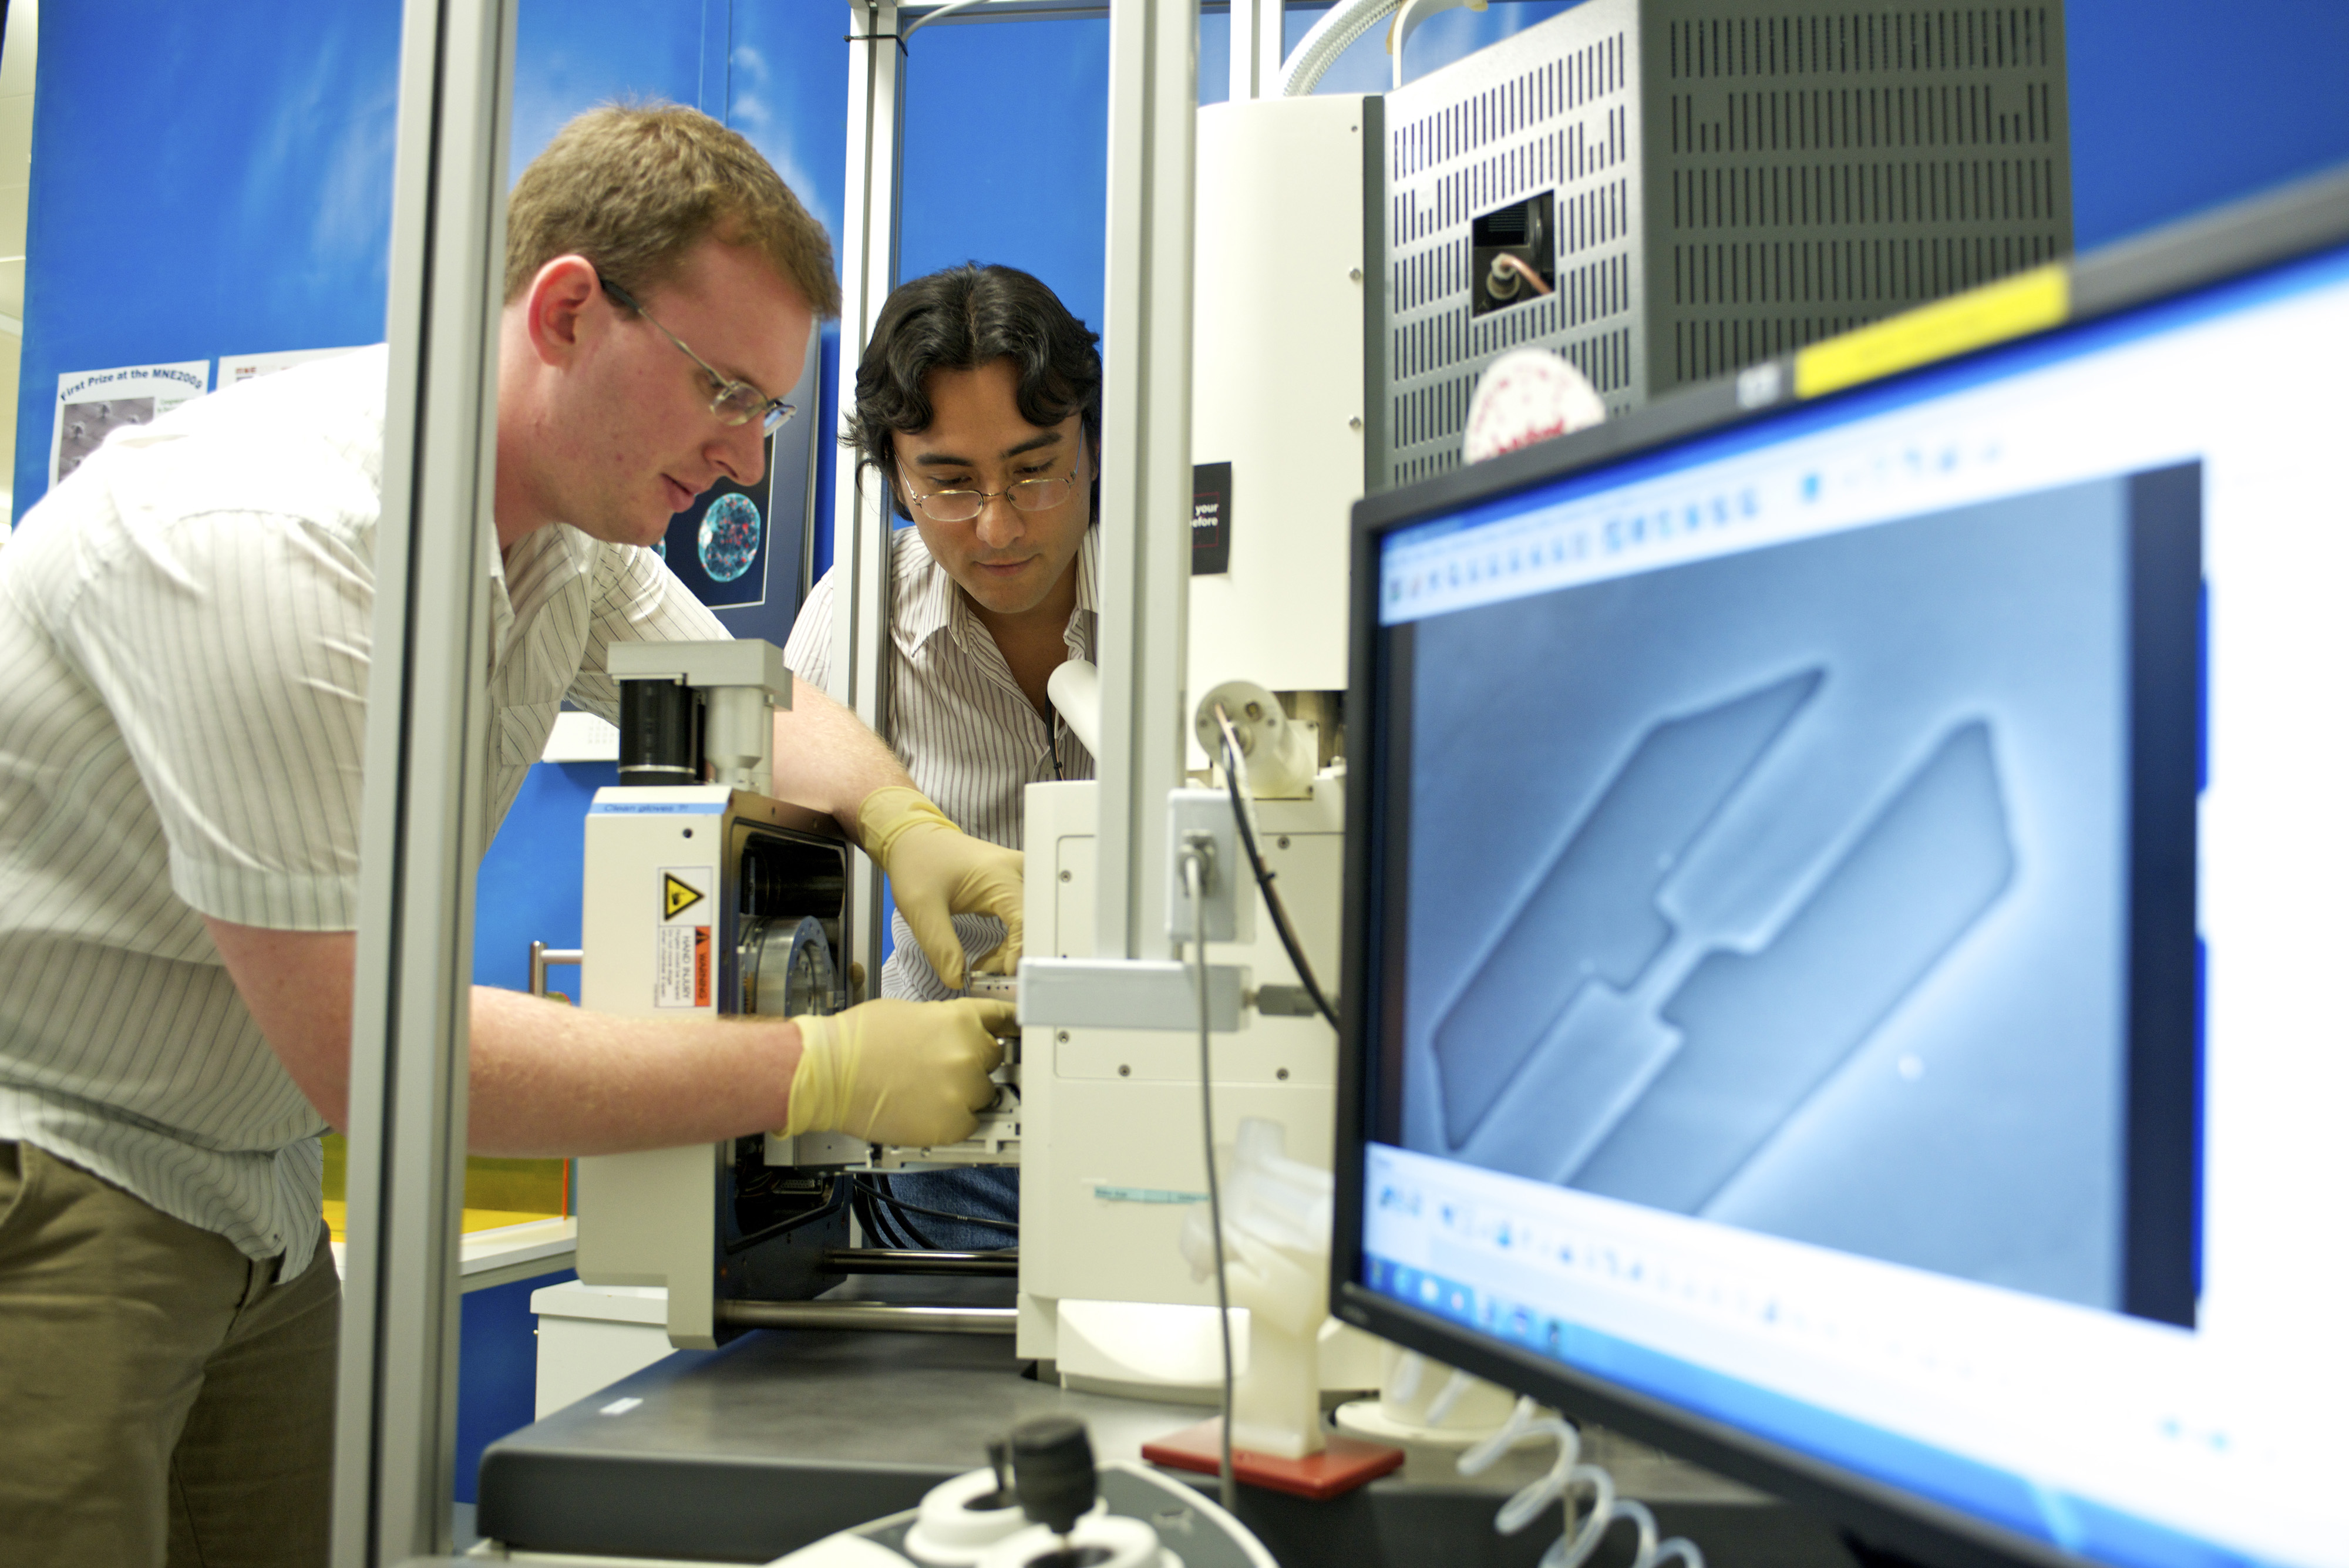 Martin Süess and Renato Minamisawa preparing an experiment on nanowires at the electron microscope. (Photo: Paul Scherrer Institute/F. Reiser)<br><br>Please note: all images are for single use only to illustrate this press release and are not to be archived. Please credit the copyright holder.